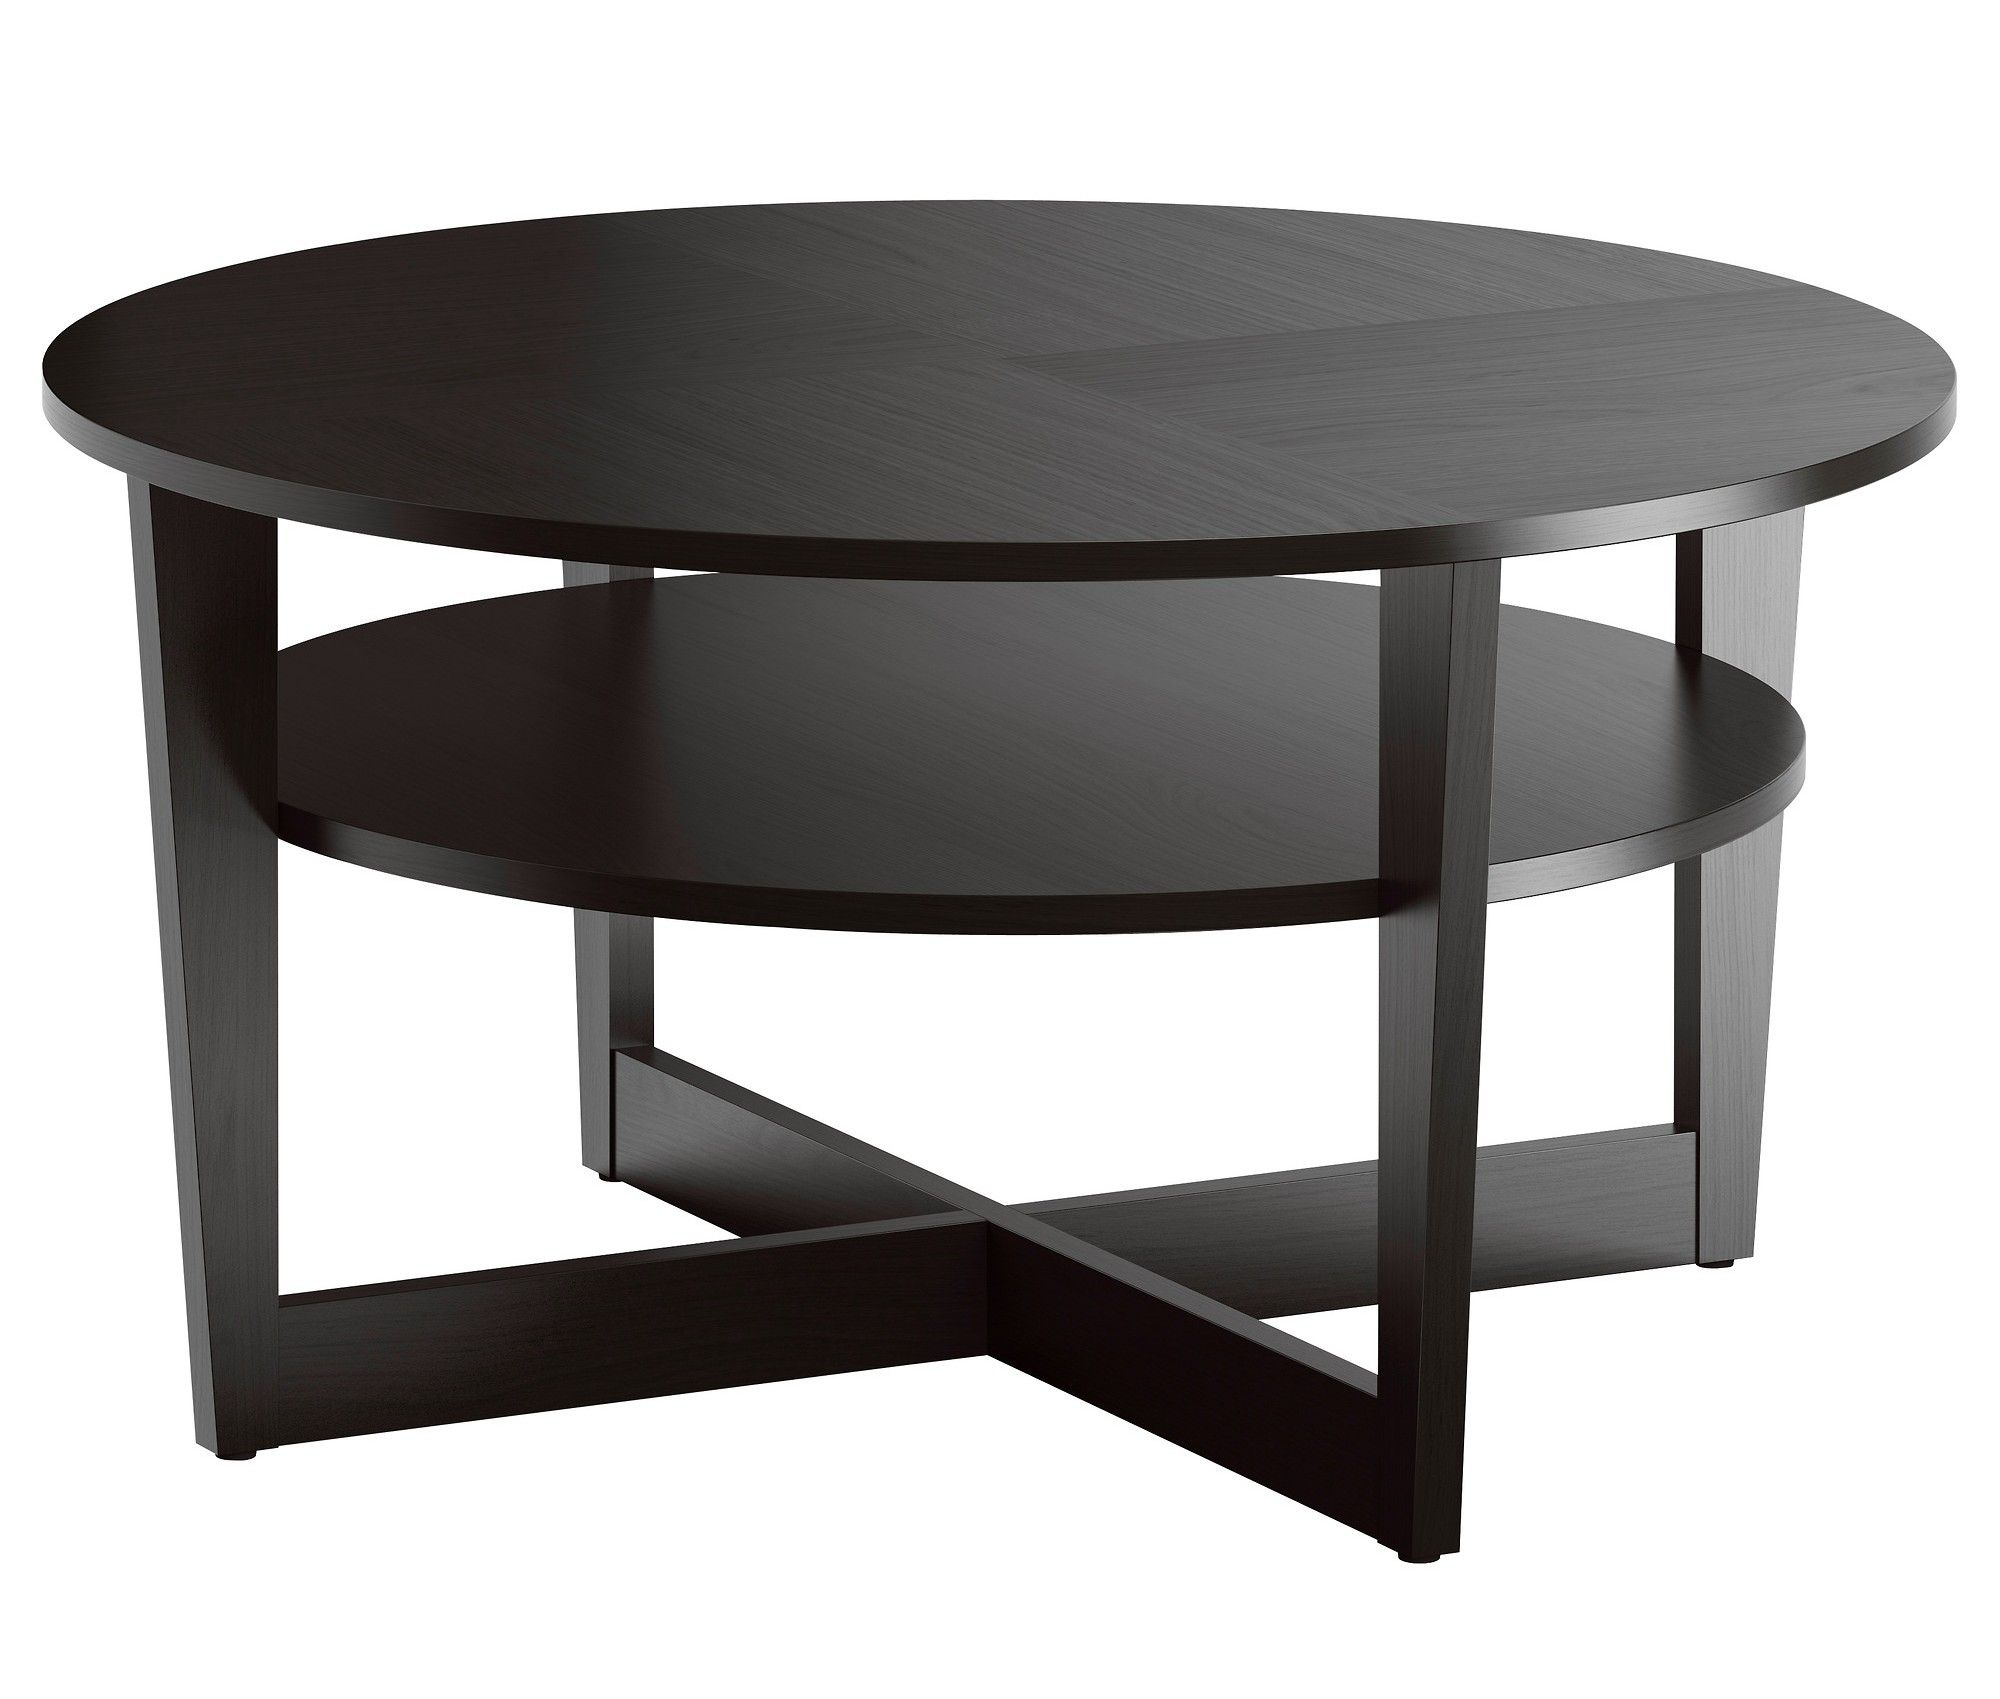 Round Coffee Table Standard Size: Average Coffee Table Size Ideas